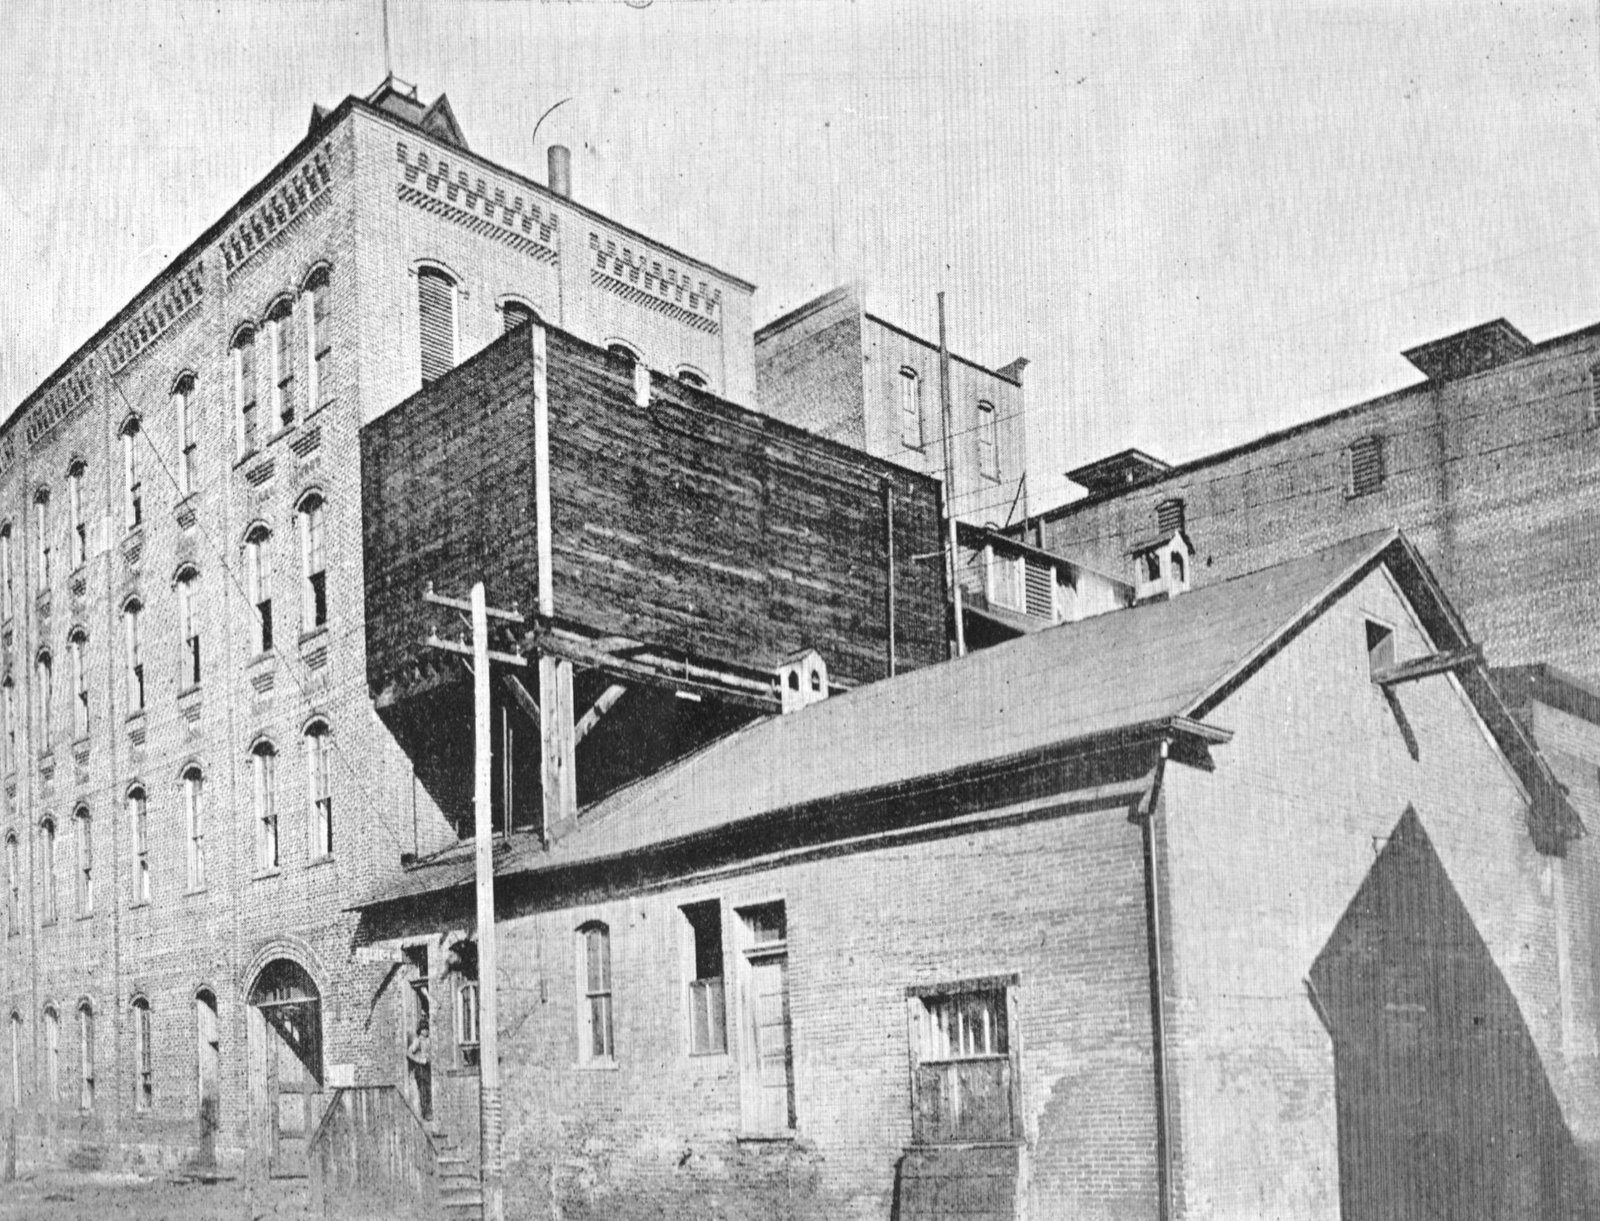 Goenner & Co. Brewery